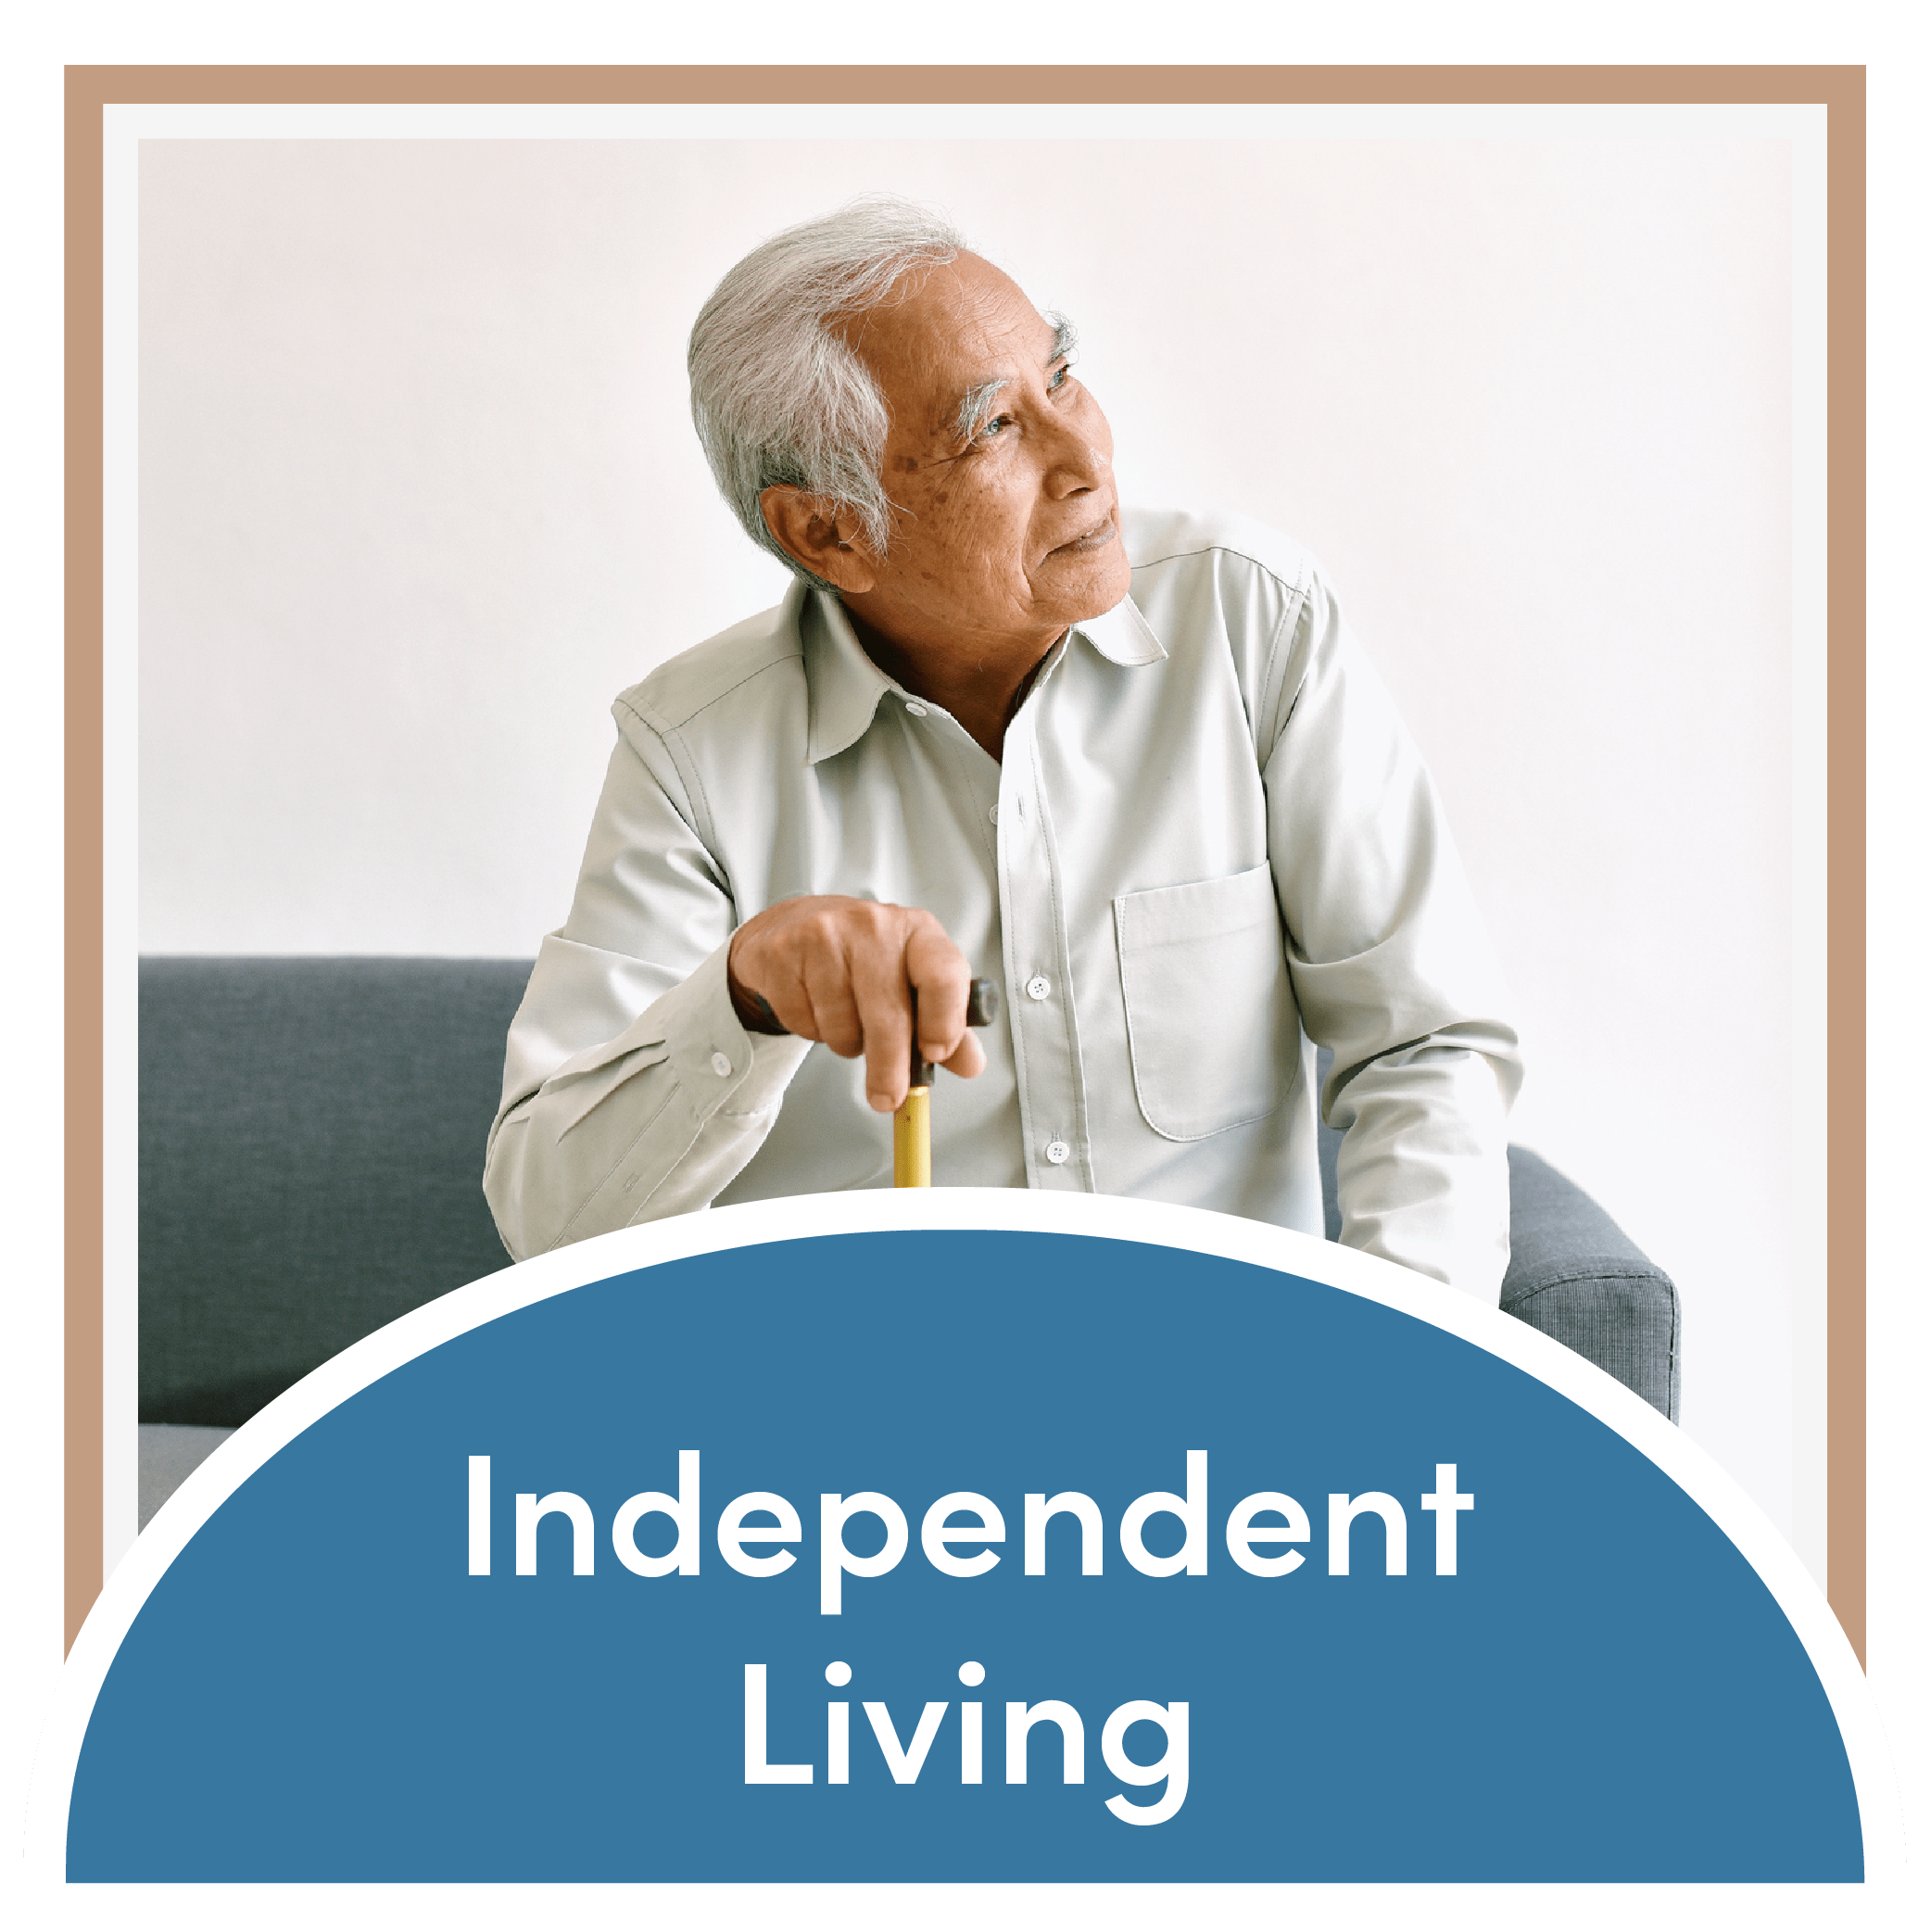 Link to the independent living page of Mountain View Retirement Village in Tucson, Arizona